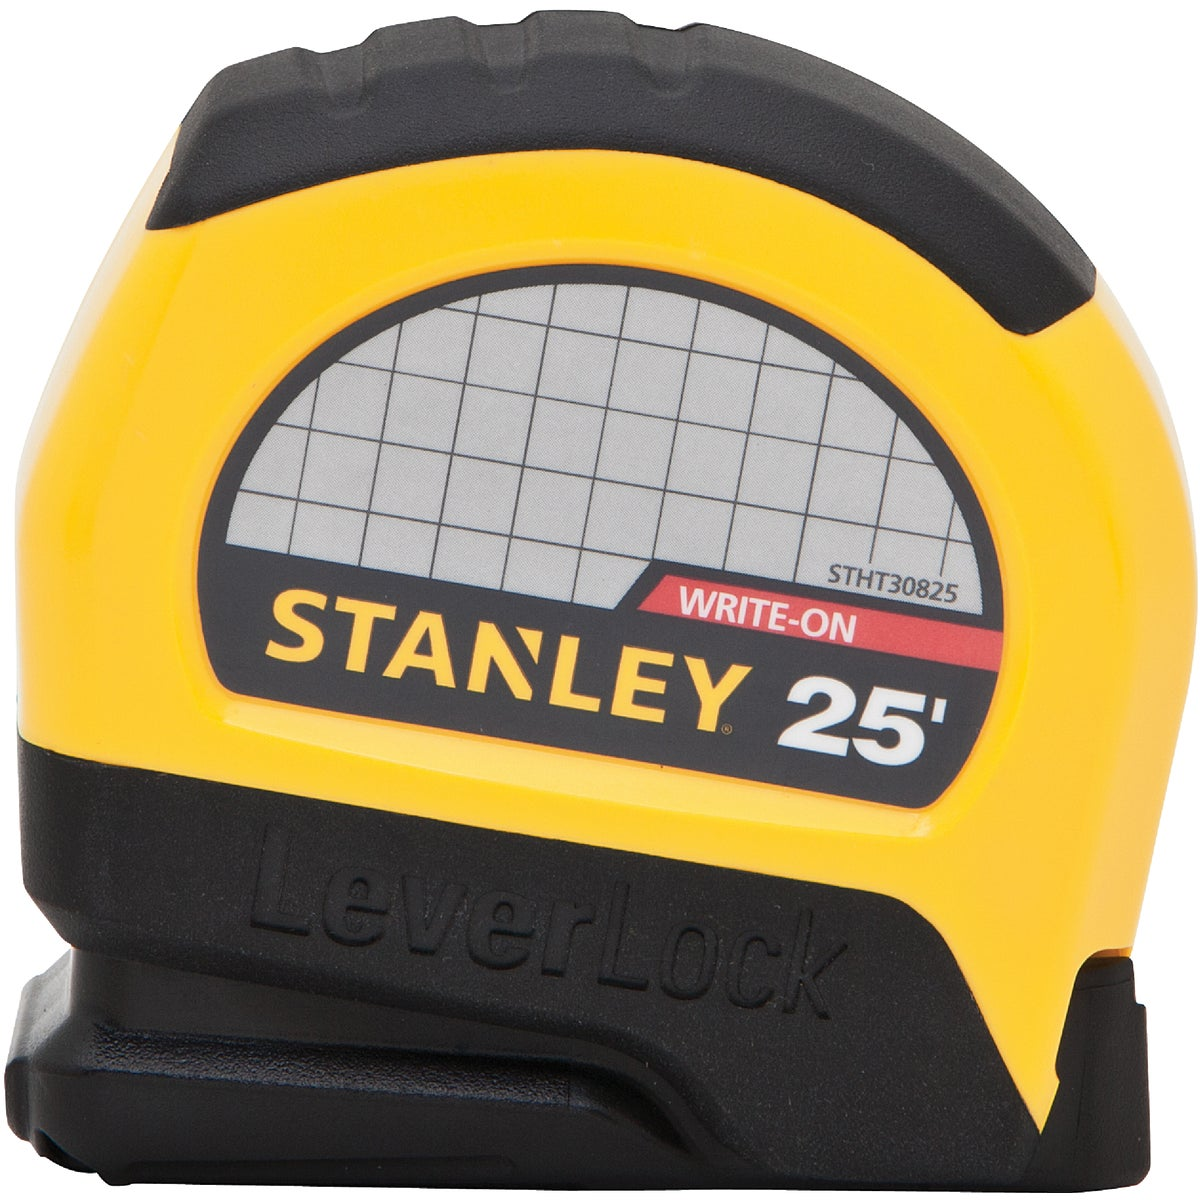 """1""""X25' YEL TAPE RULE - STHT30825 by Stanley Tools"""